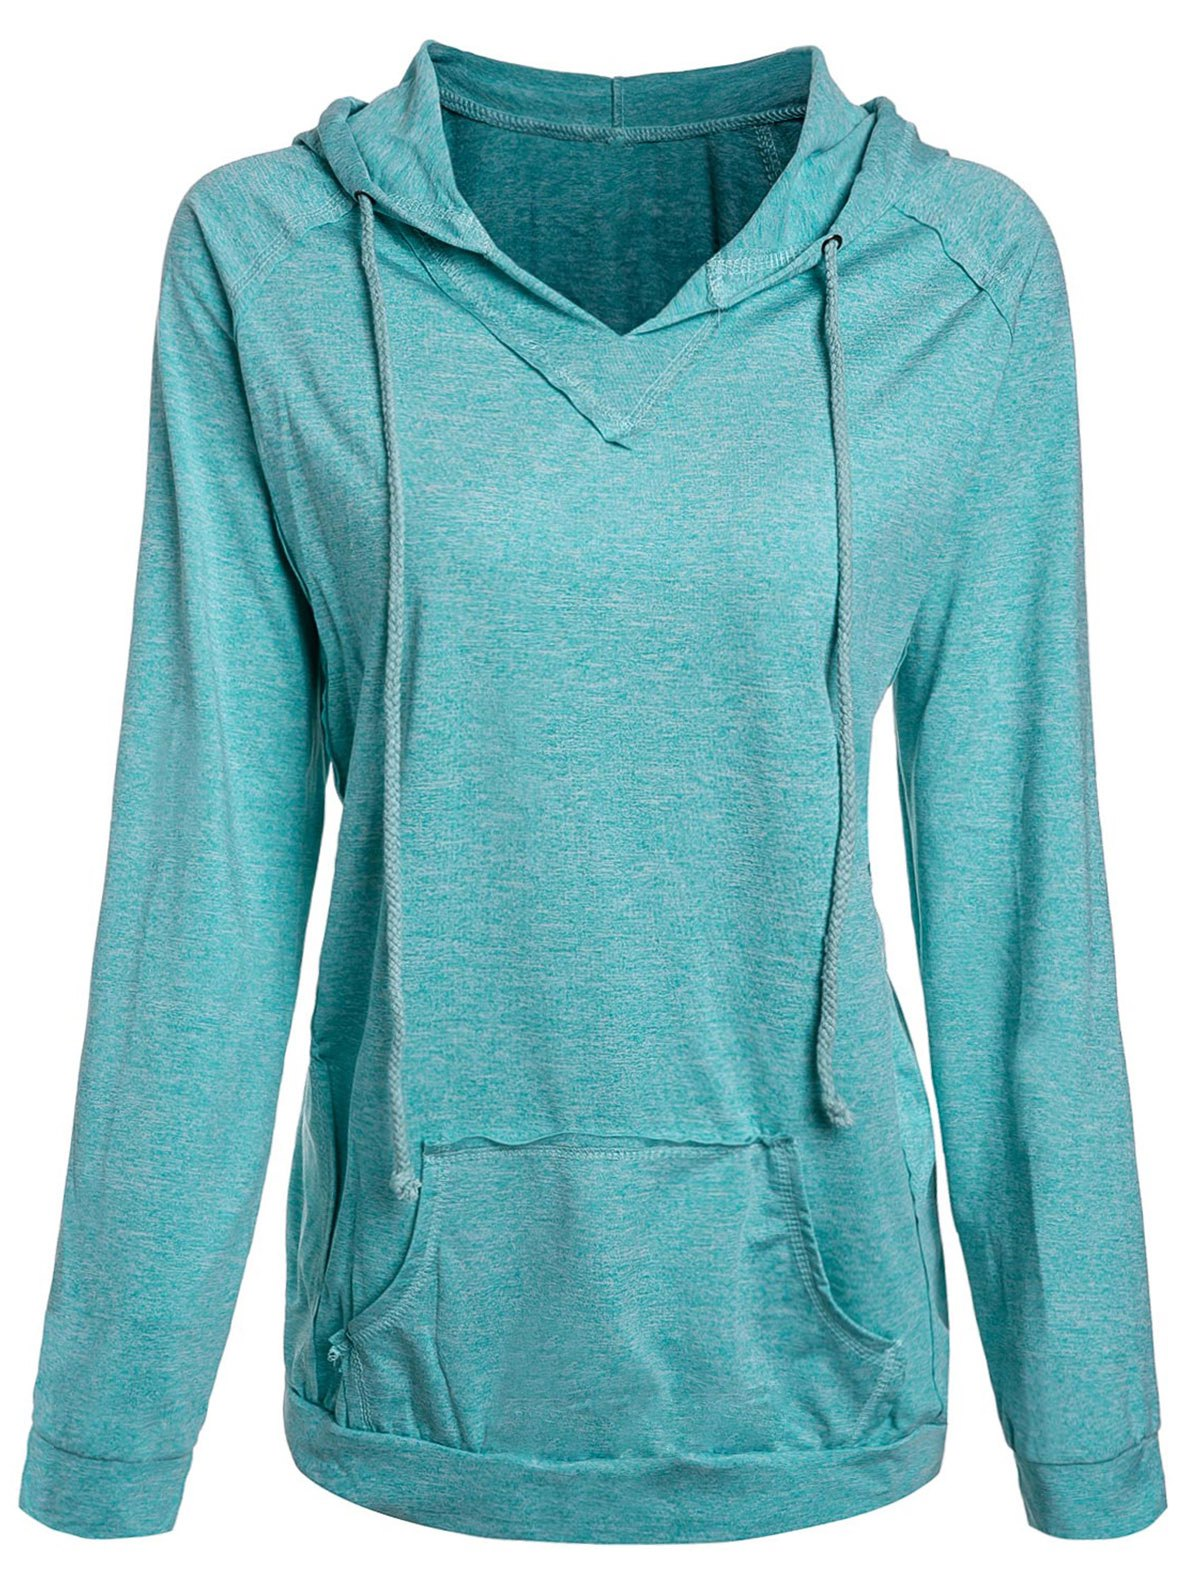 Active Candy Color Hooded Pocket Spliced Pullover Hoodie For Women